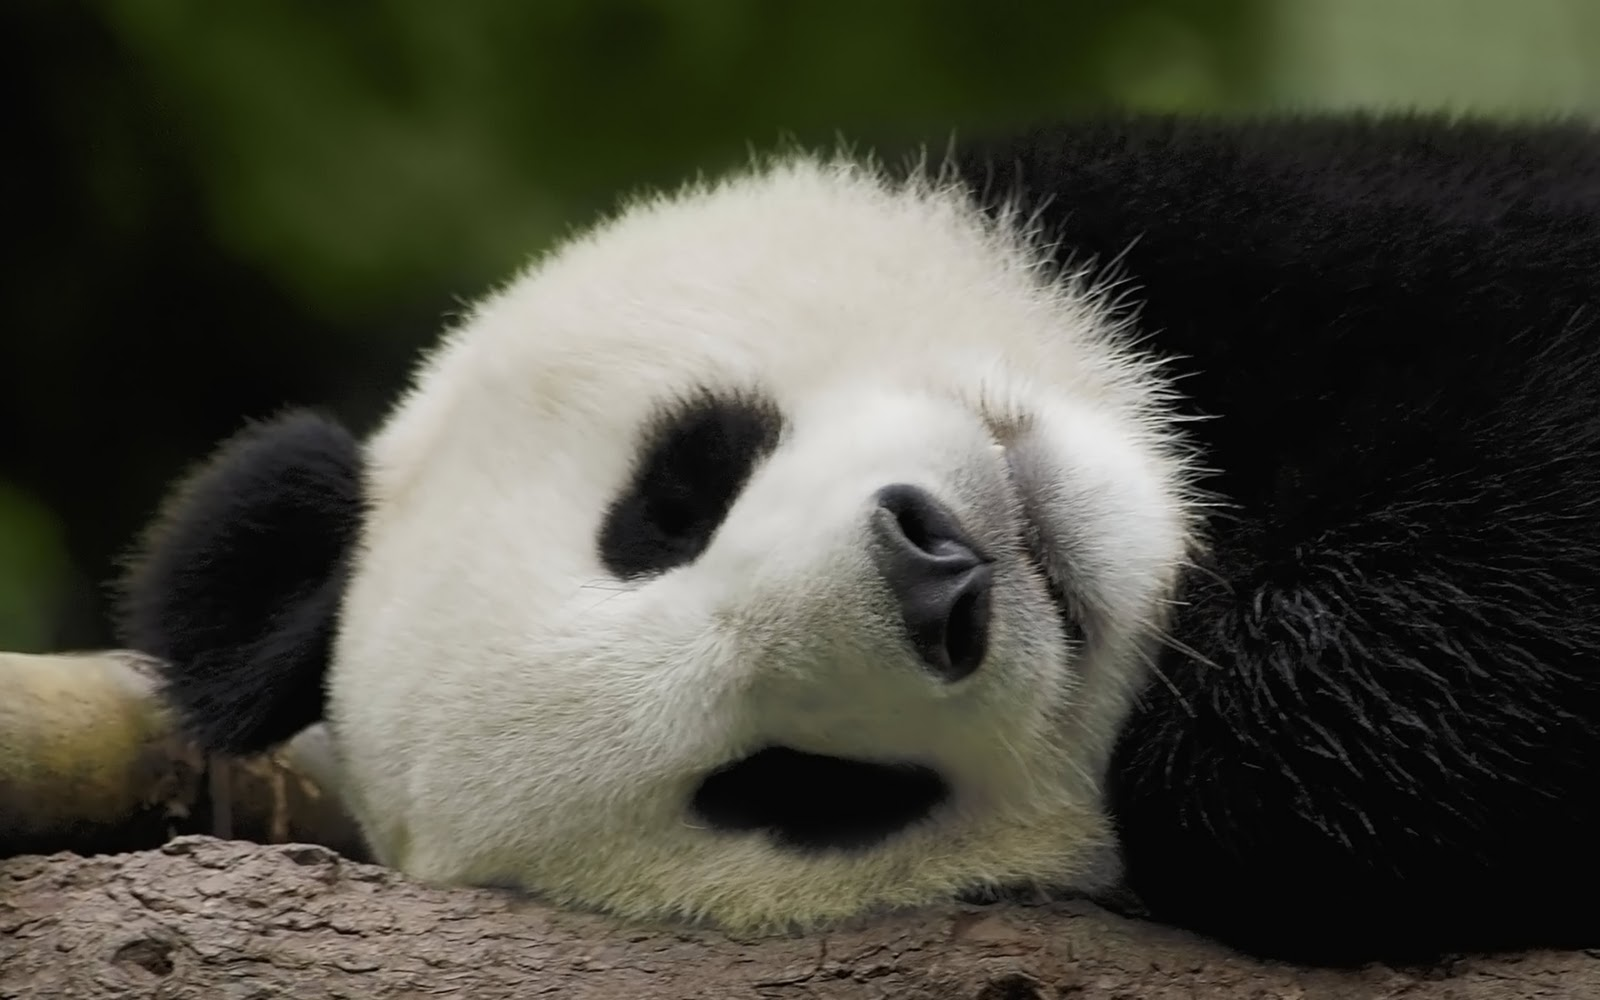 sleeping-panda-wallpaper-1920x1200-0912032